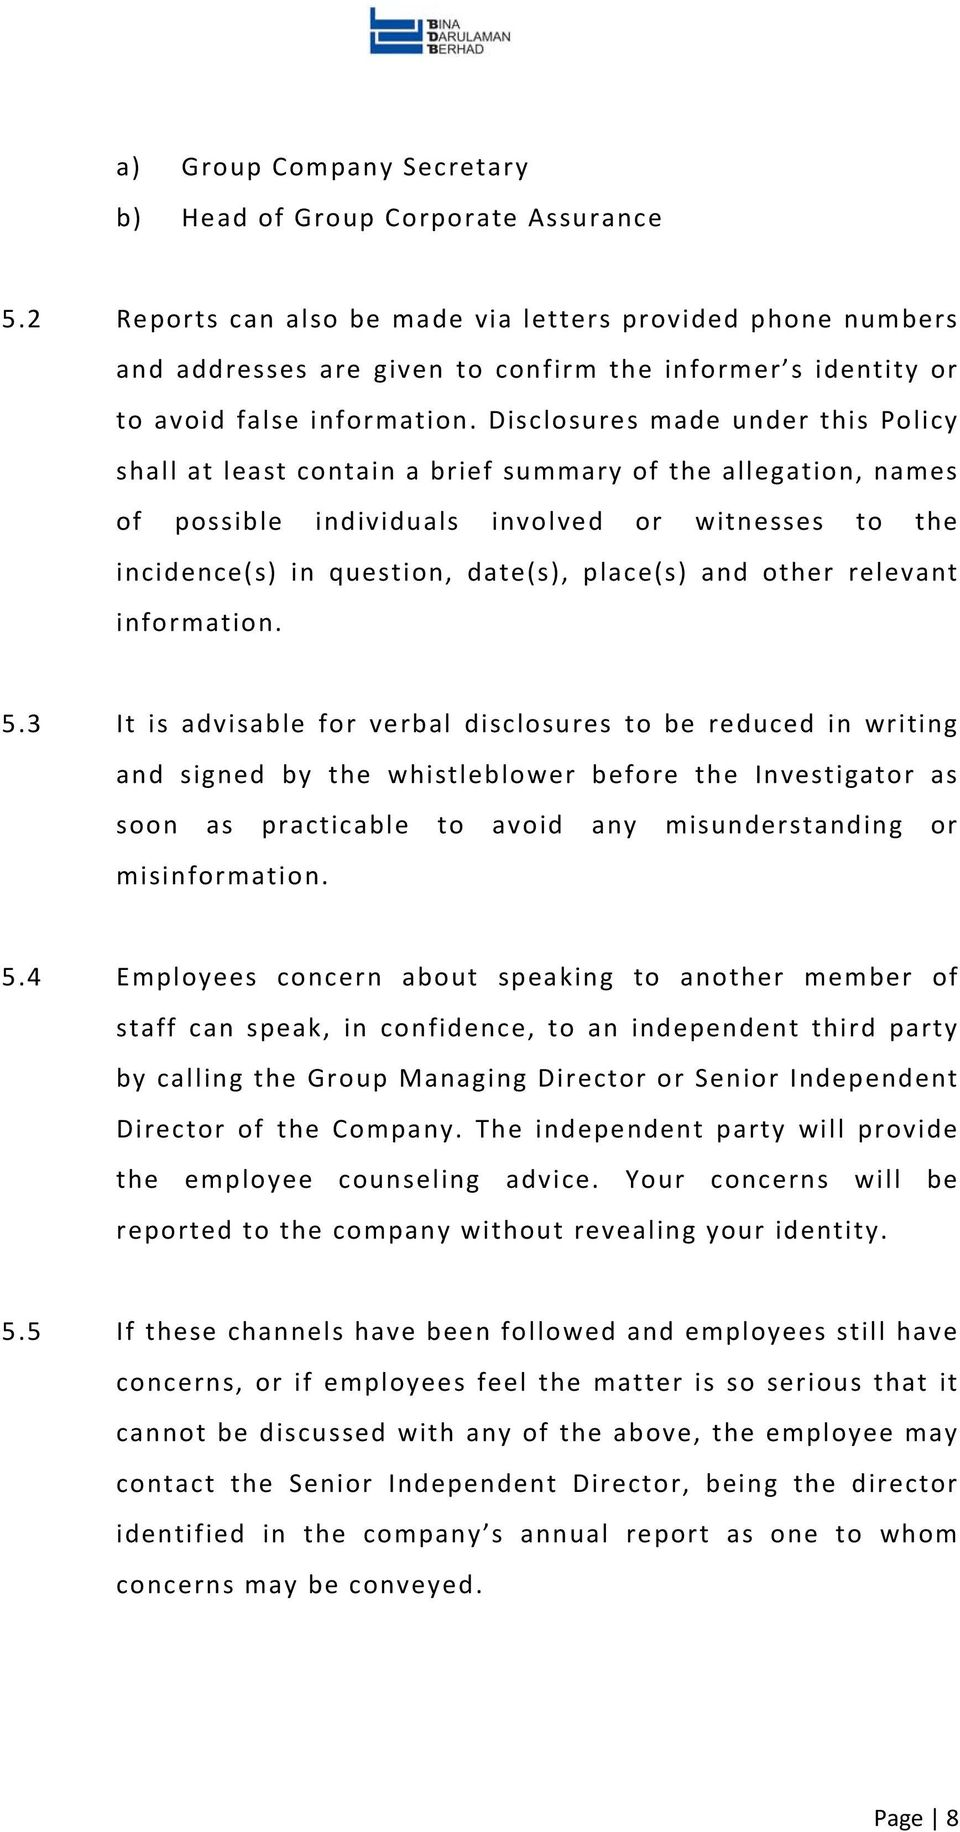 Disclosures made under this Policy shall at least contain a brief summary of the allegation, names of possible individuals involved or witnesses to the incidence(s) in question, date(s), place(s) and